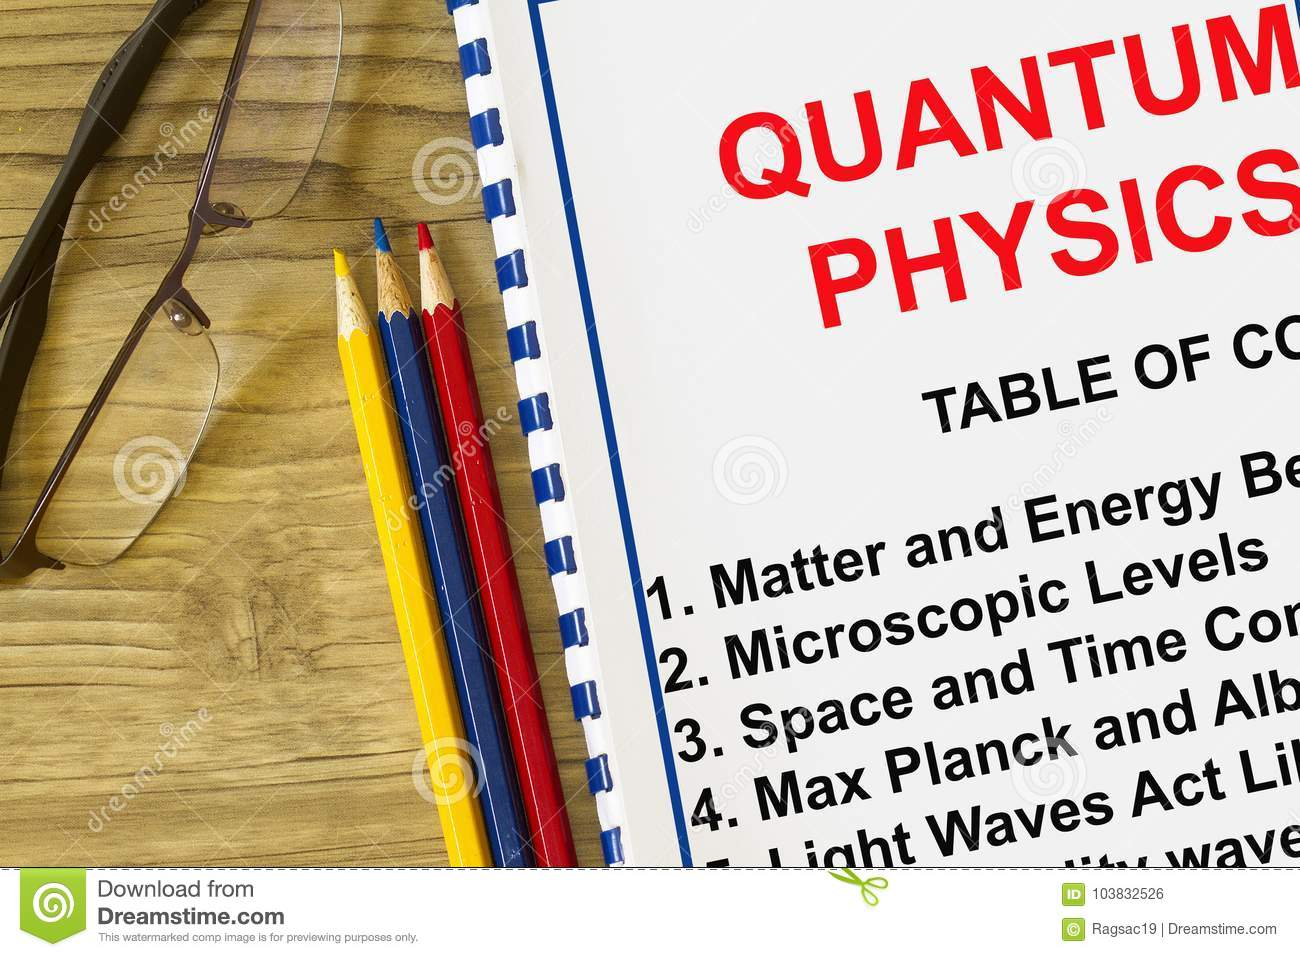 quantum physics definition concept stock photo - image of theory